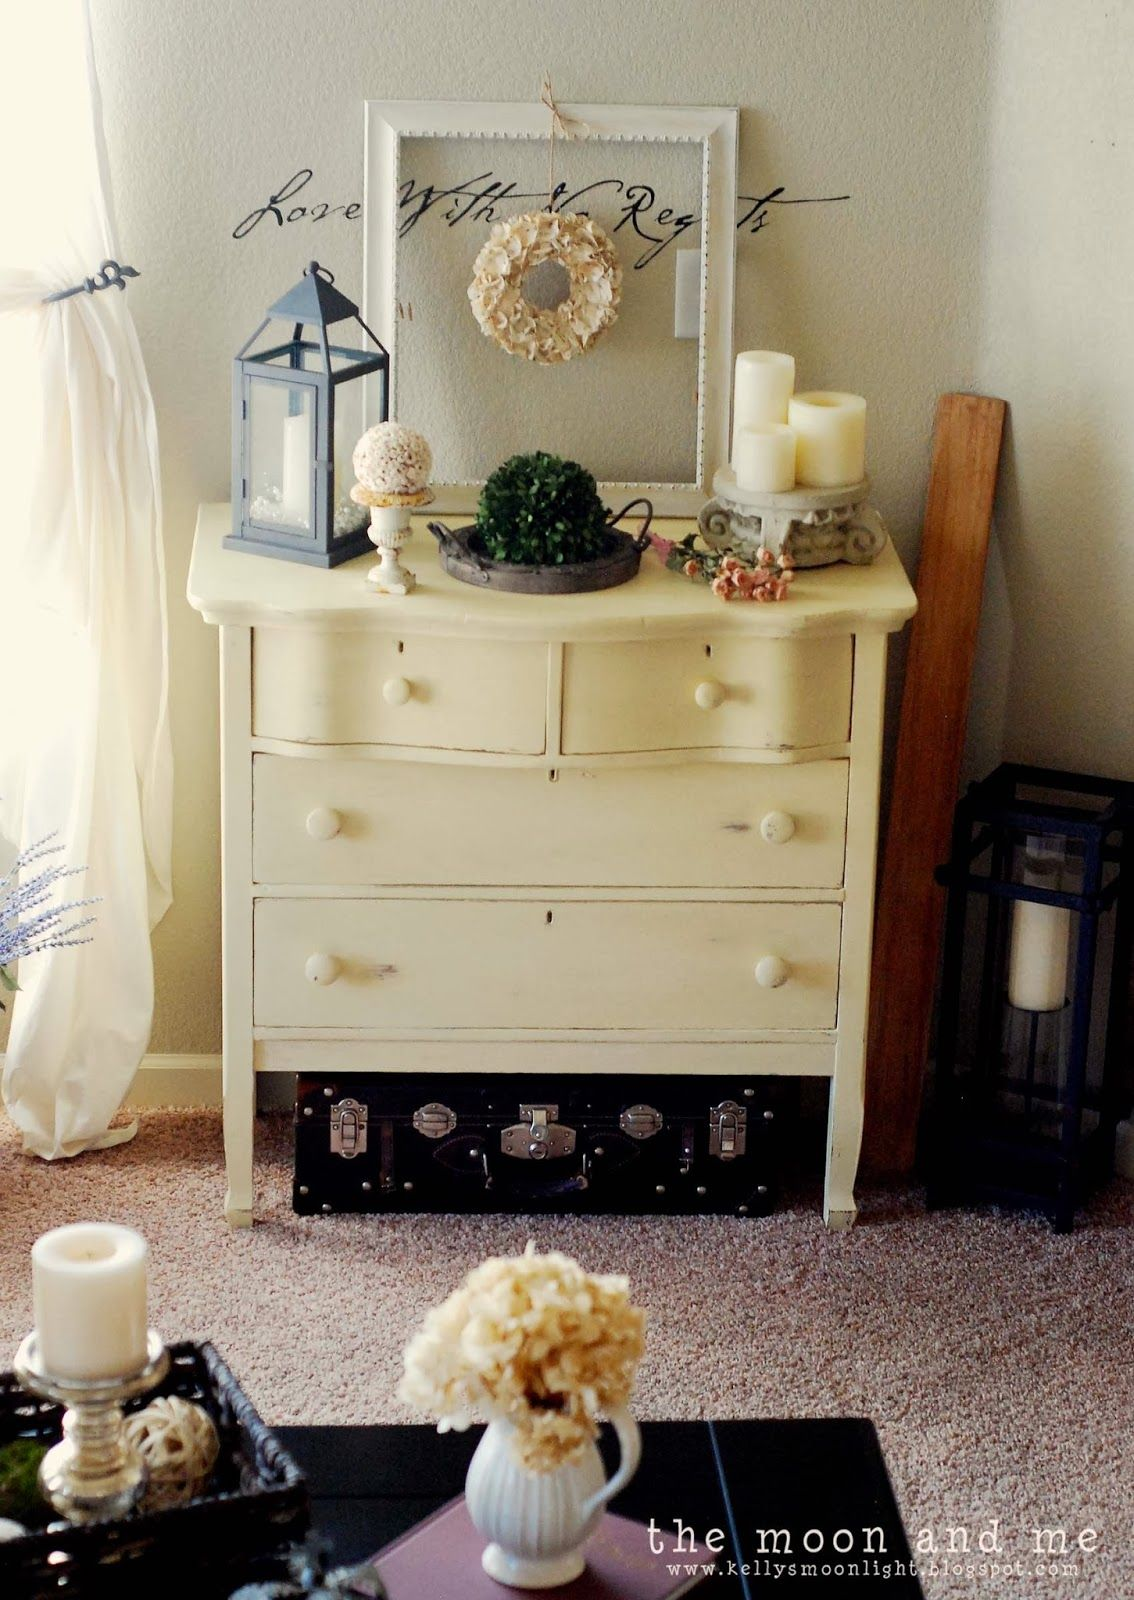 The Moon and Me: The Painted Lady ~ A Dresser Update